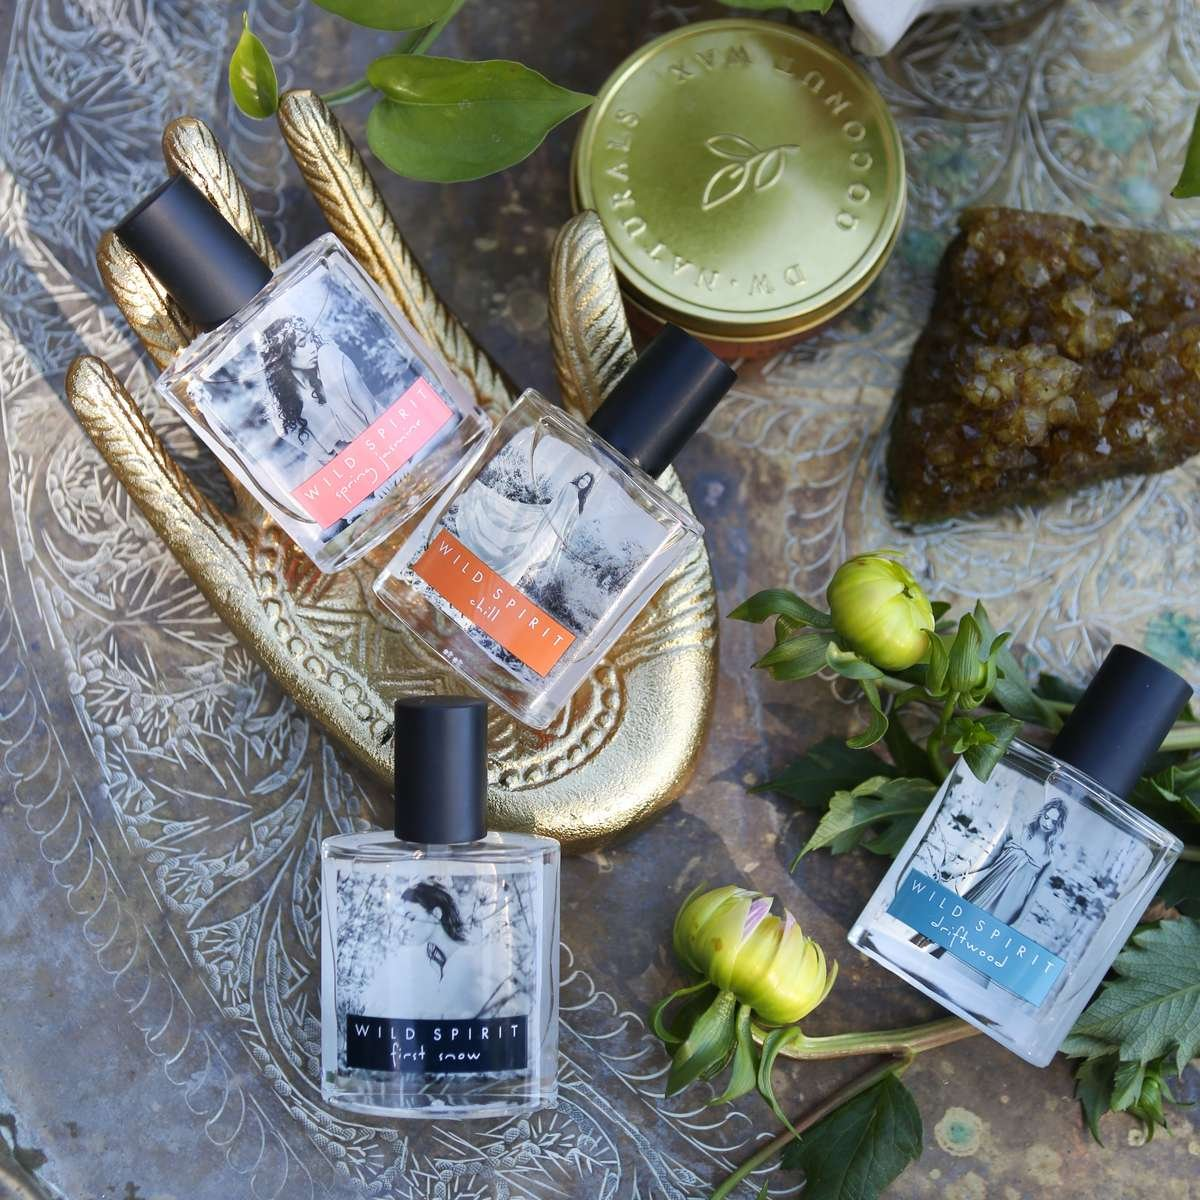 A new independent fragrance Brand WILD SPIRIT to Launch July 2018 in Walmart